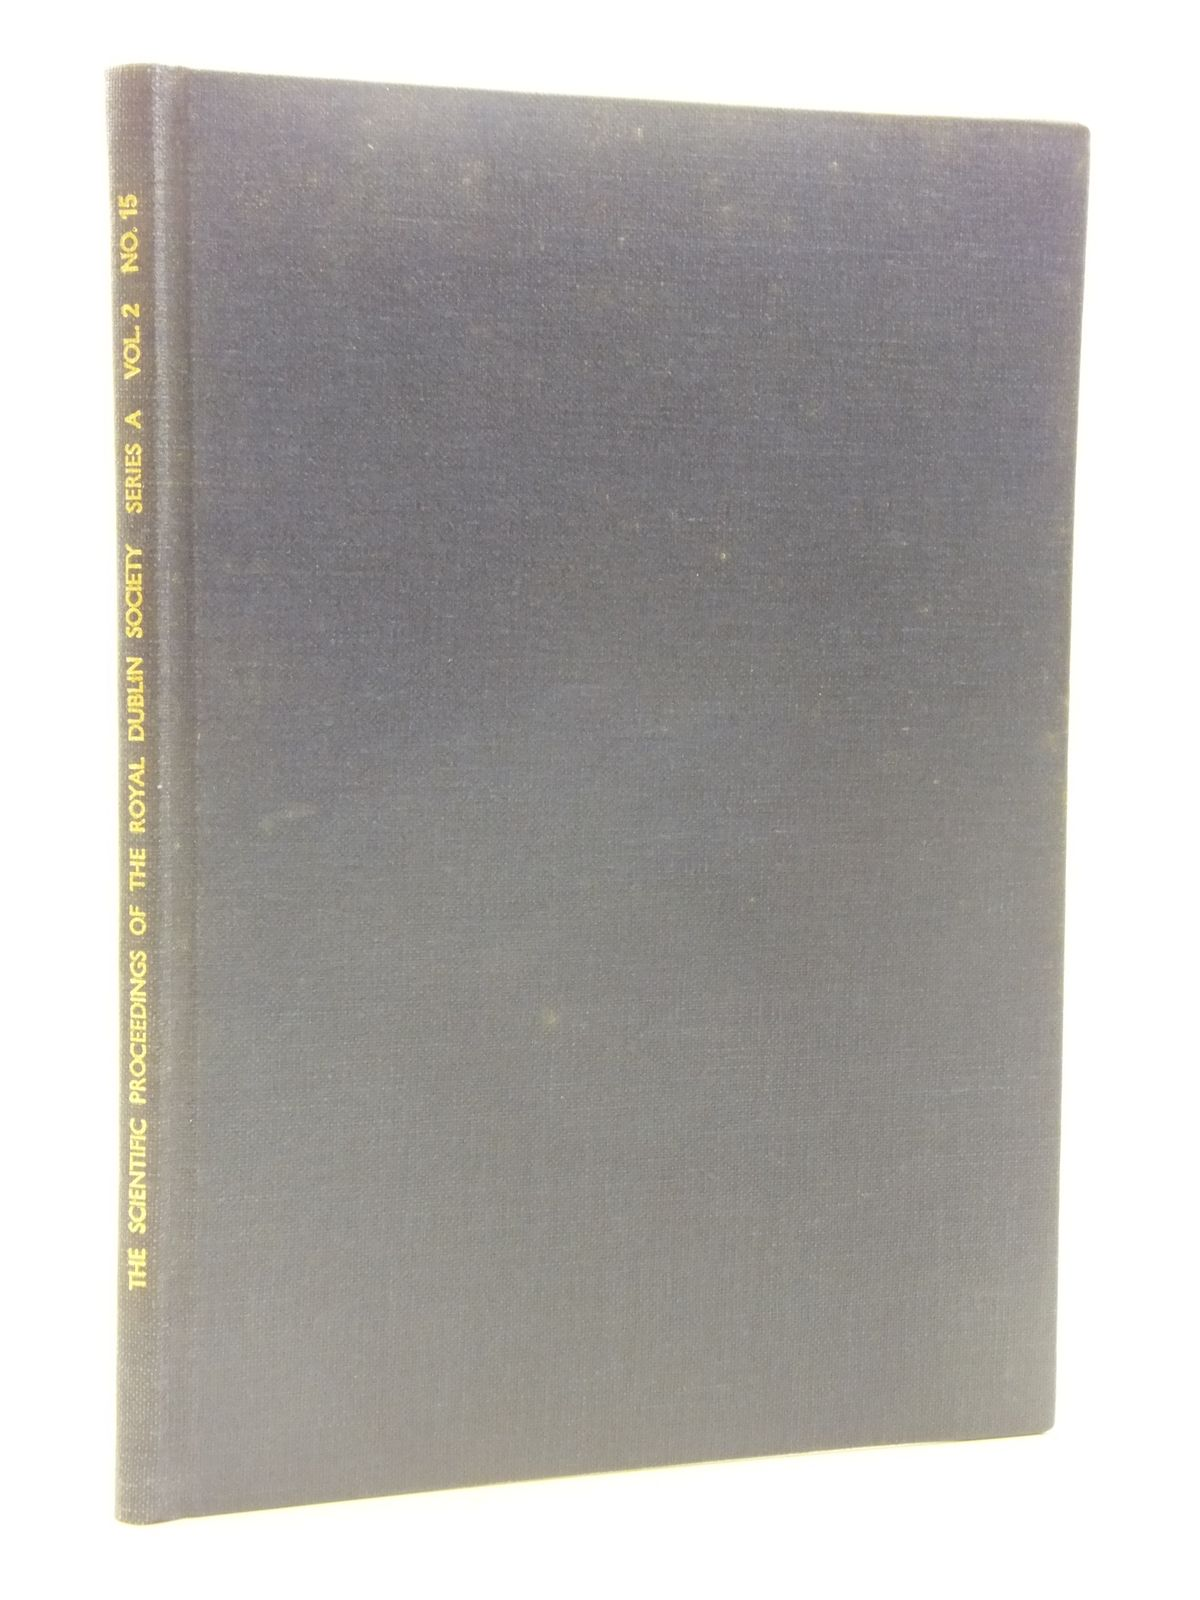 Photo of THE SCIENTIFIC PROCEEDINGS OF THE ROYAL DUBLIN SOCIETY SERIES A VOL. 2 No. 15- Stock Number: 1605326